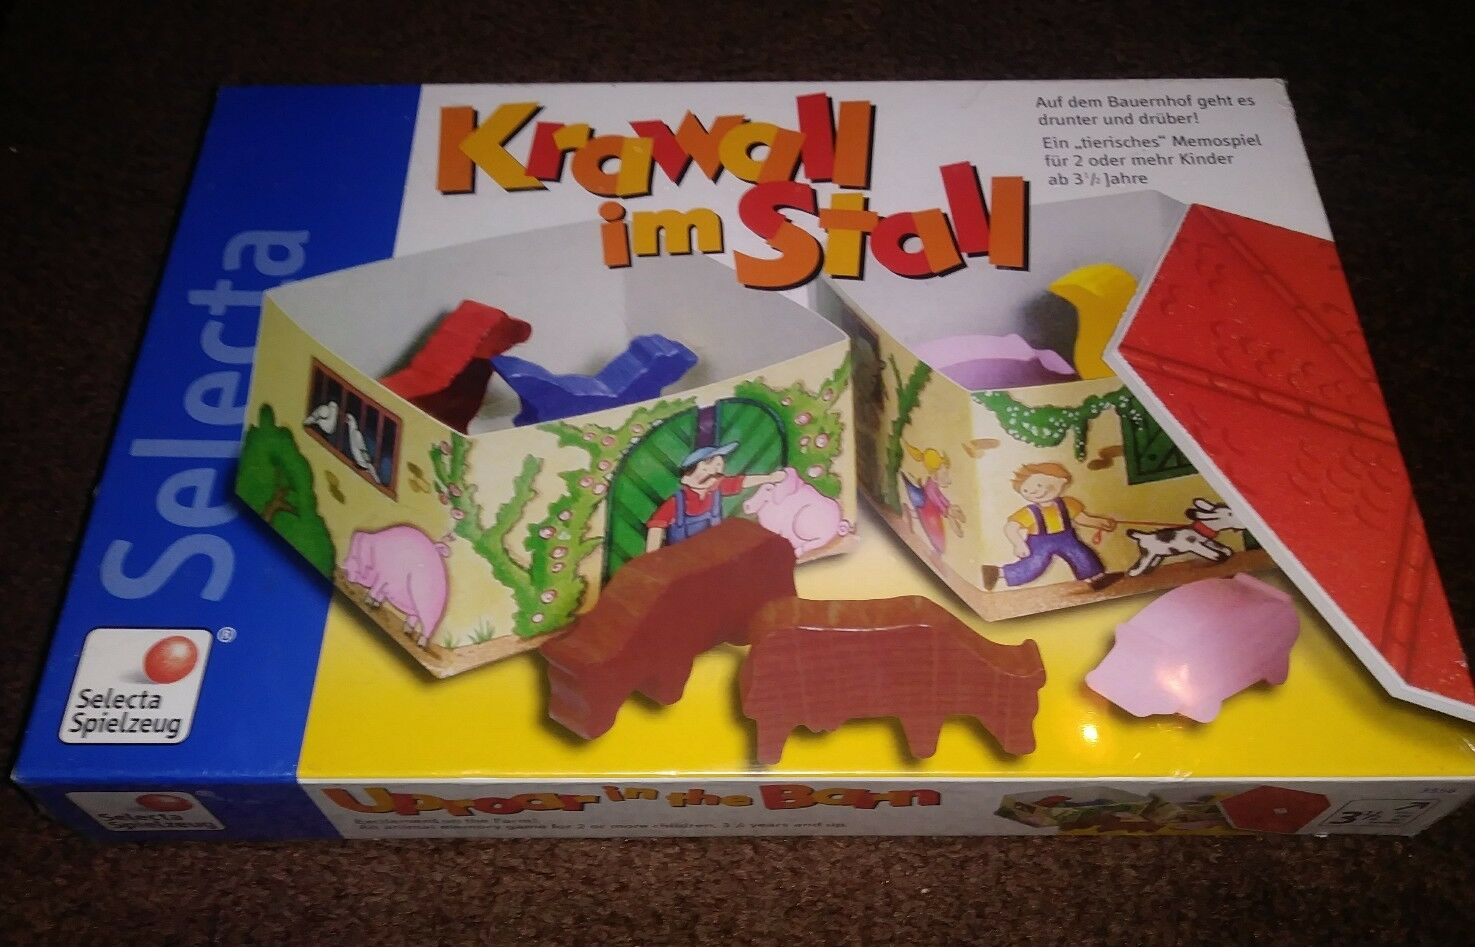 New Krawall Im Stall - Gekrakeel In De Stal Selecta Spielzeug Game From Germany